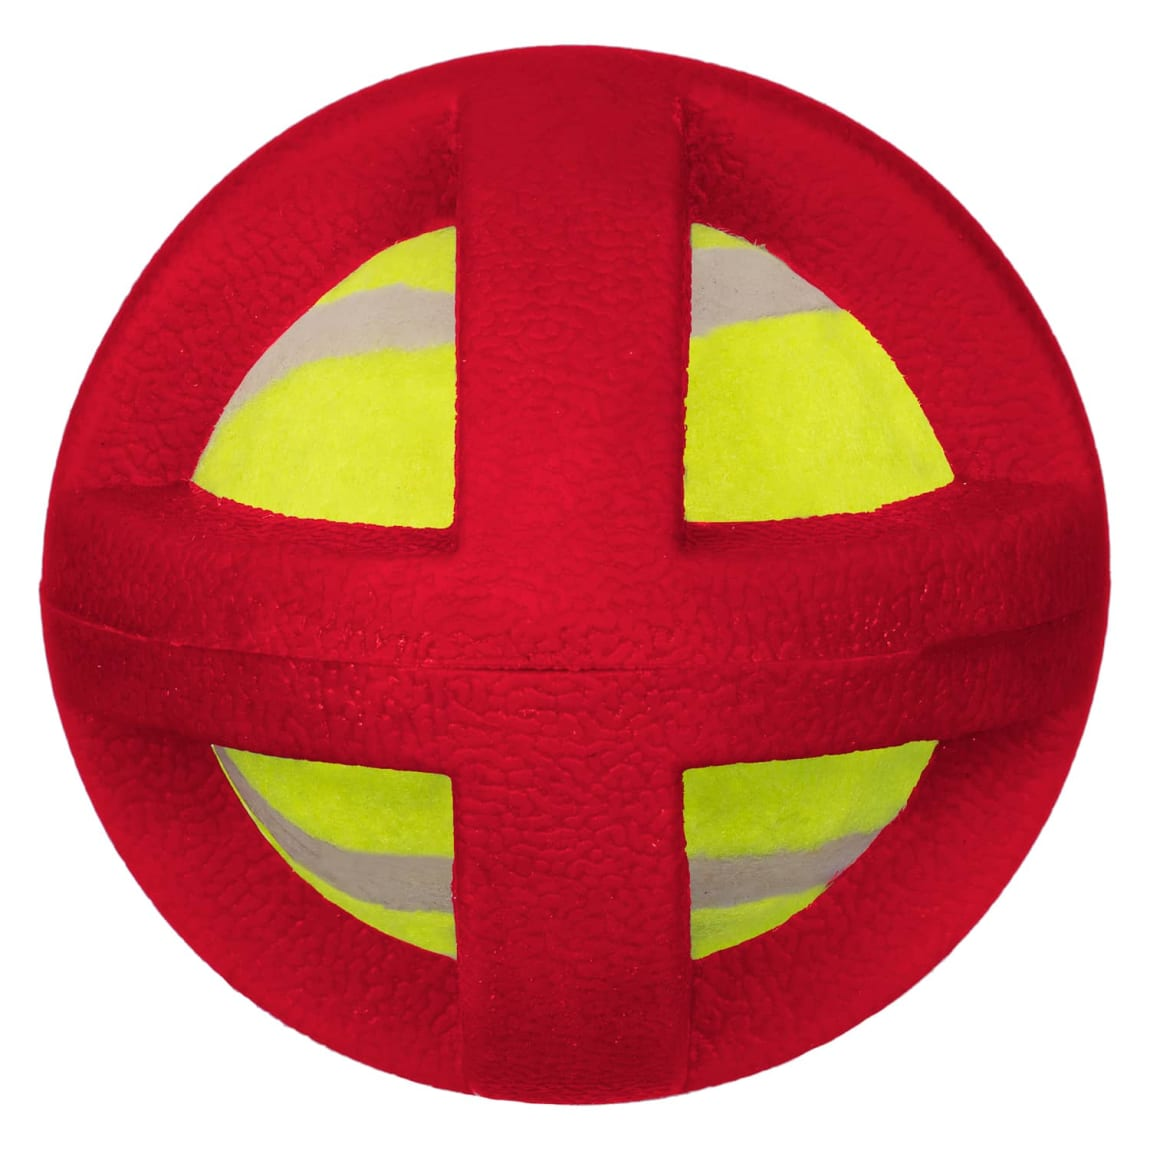 Gladiator Ball Dog Toy - Red